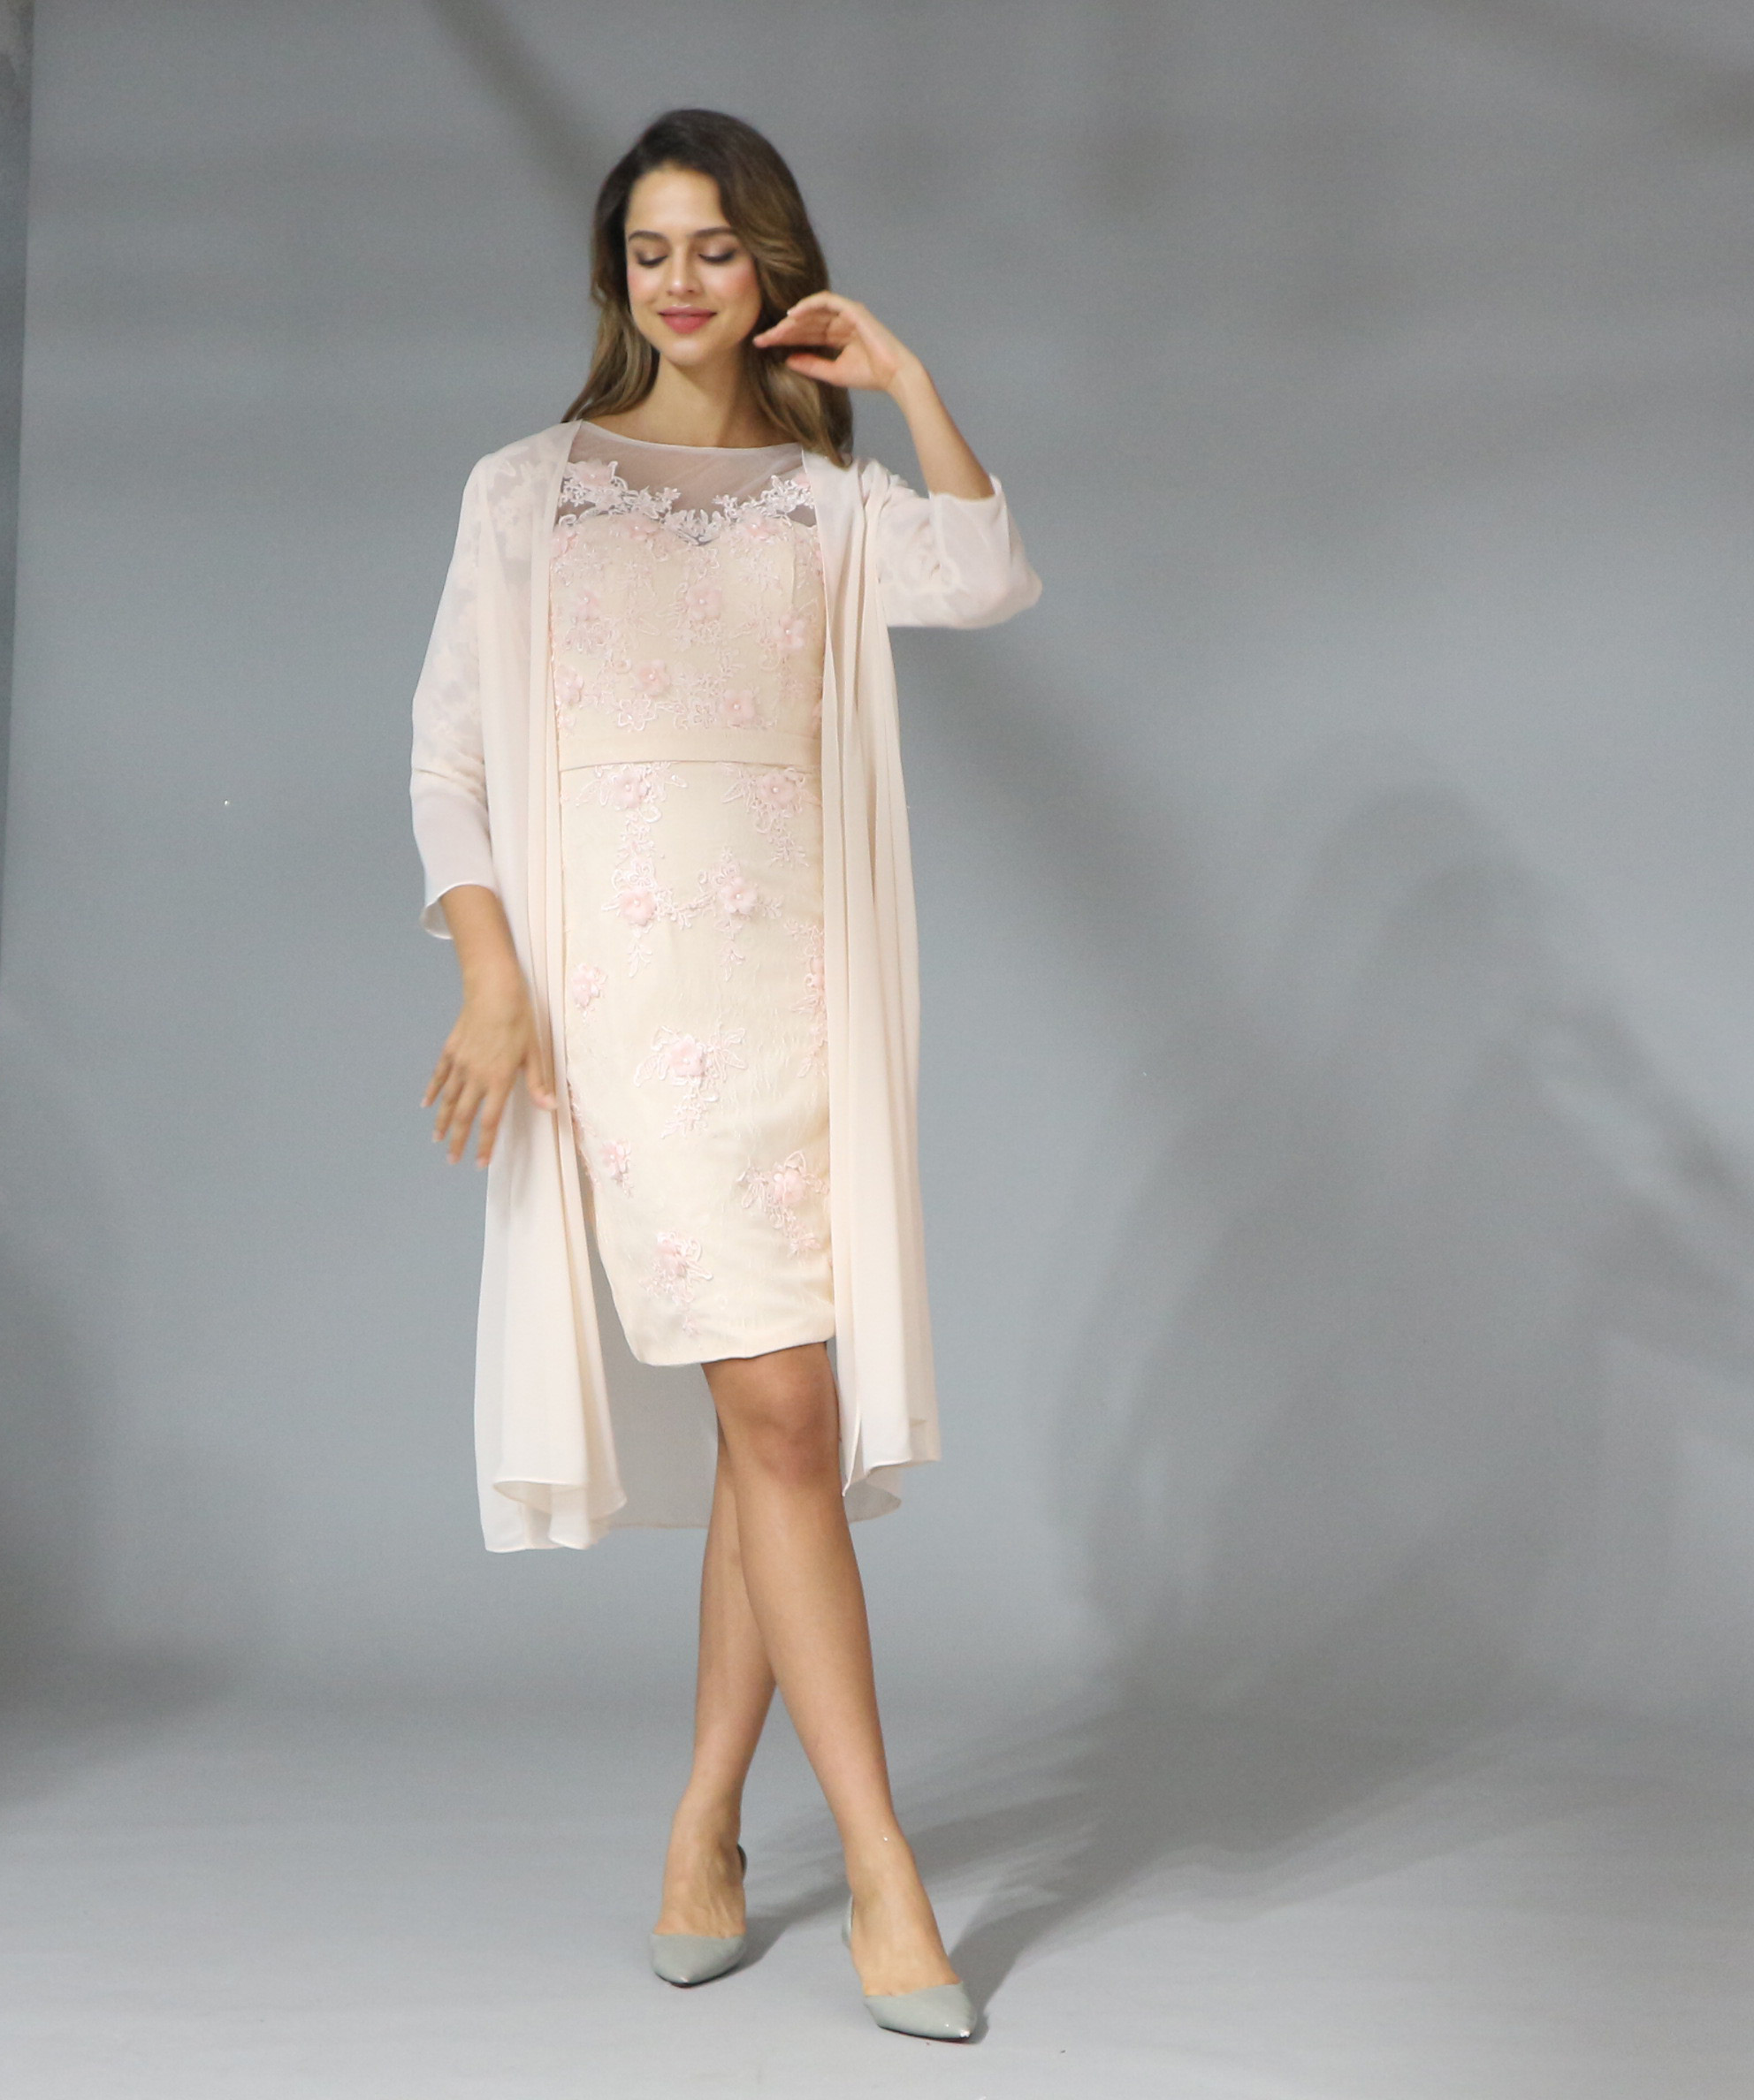 2019 Elegant Lace With Chiffon Tea Length 3/4 Sleeve Mother Of The Bride Dress Plus Size Vestido Madre De La Novia title=